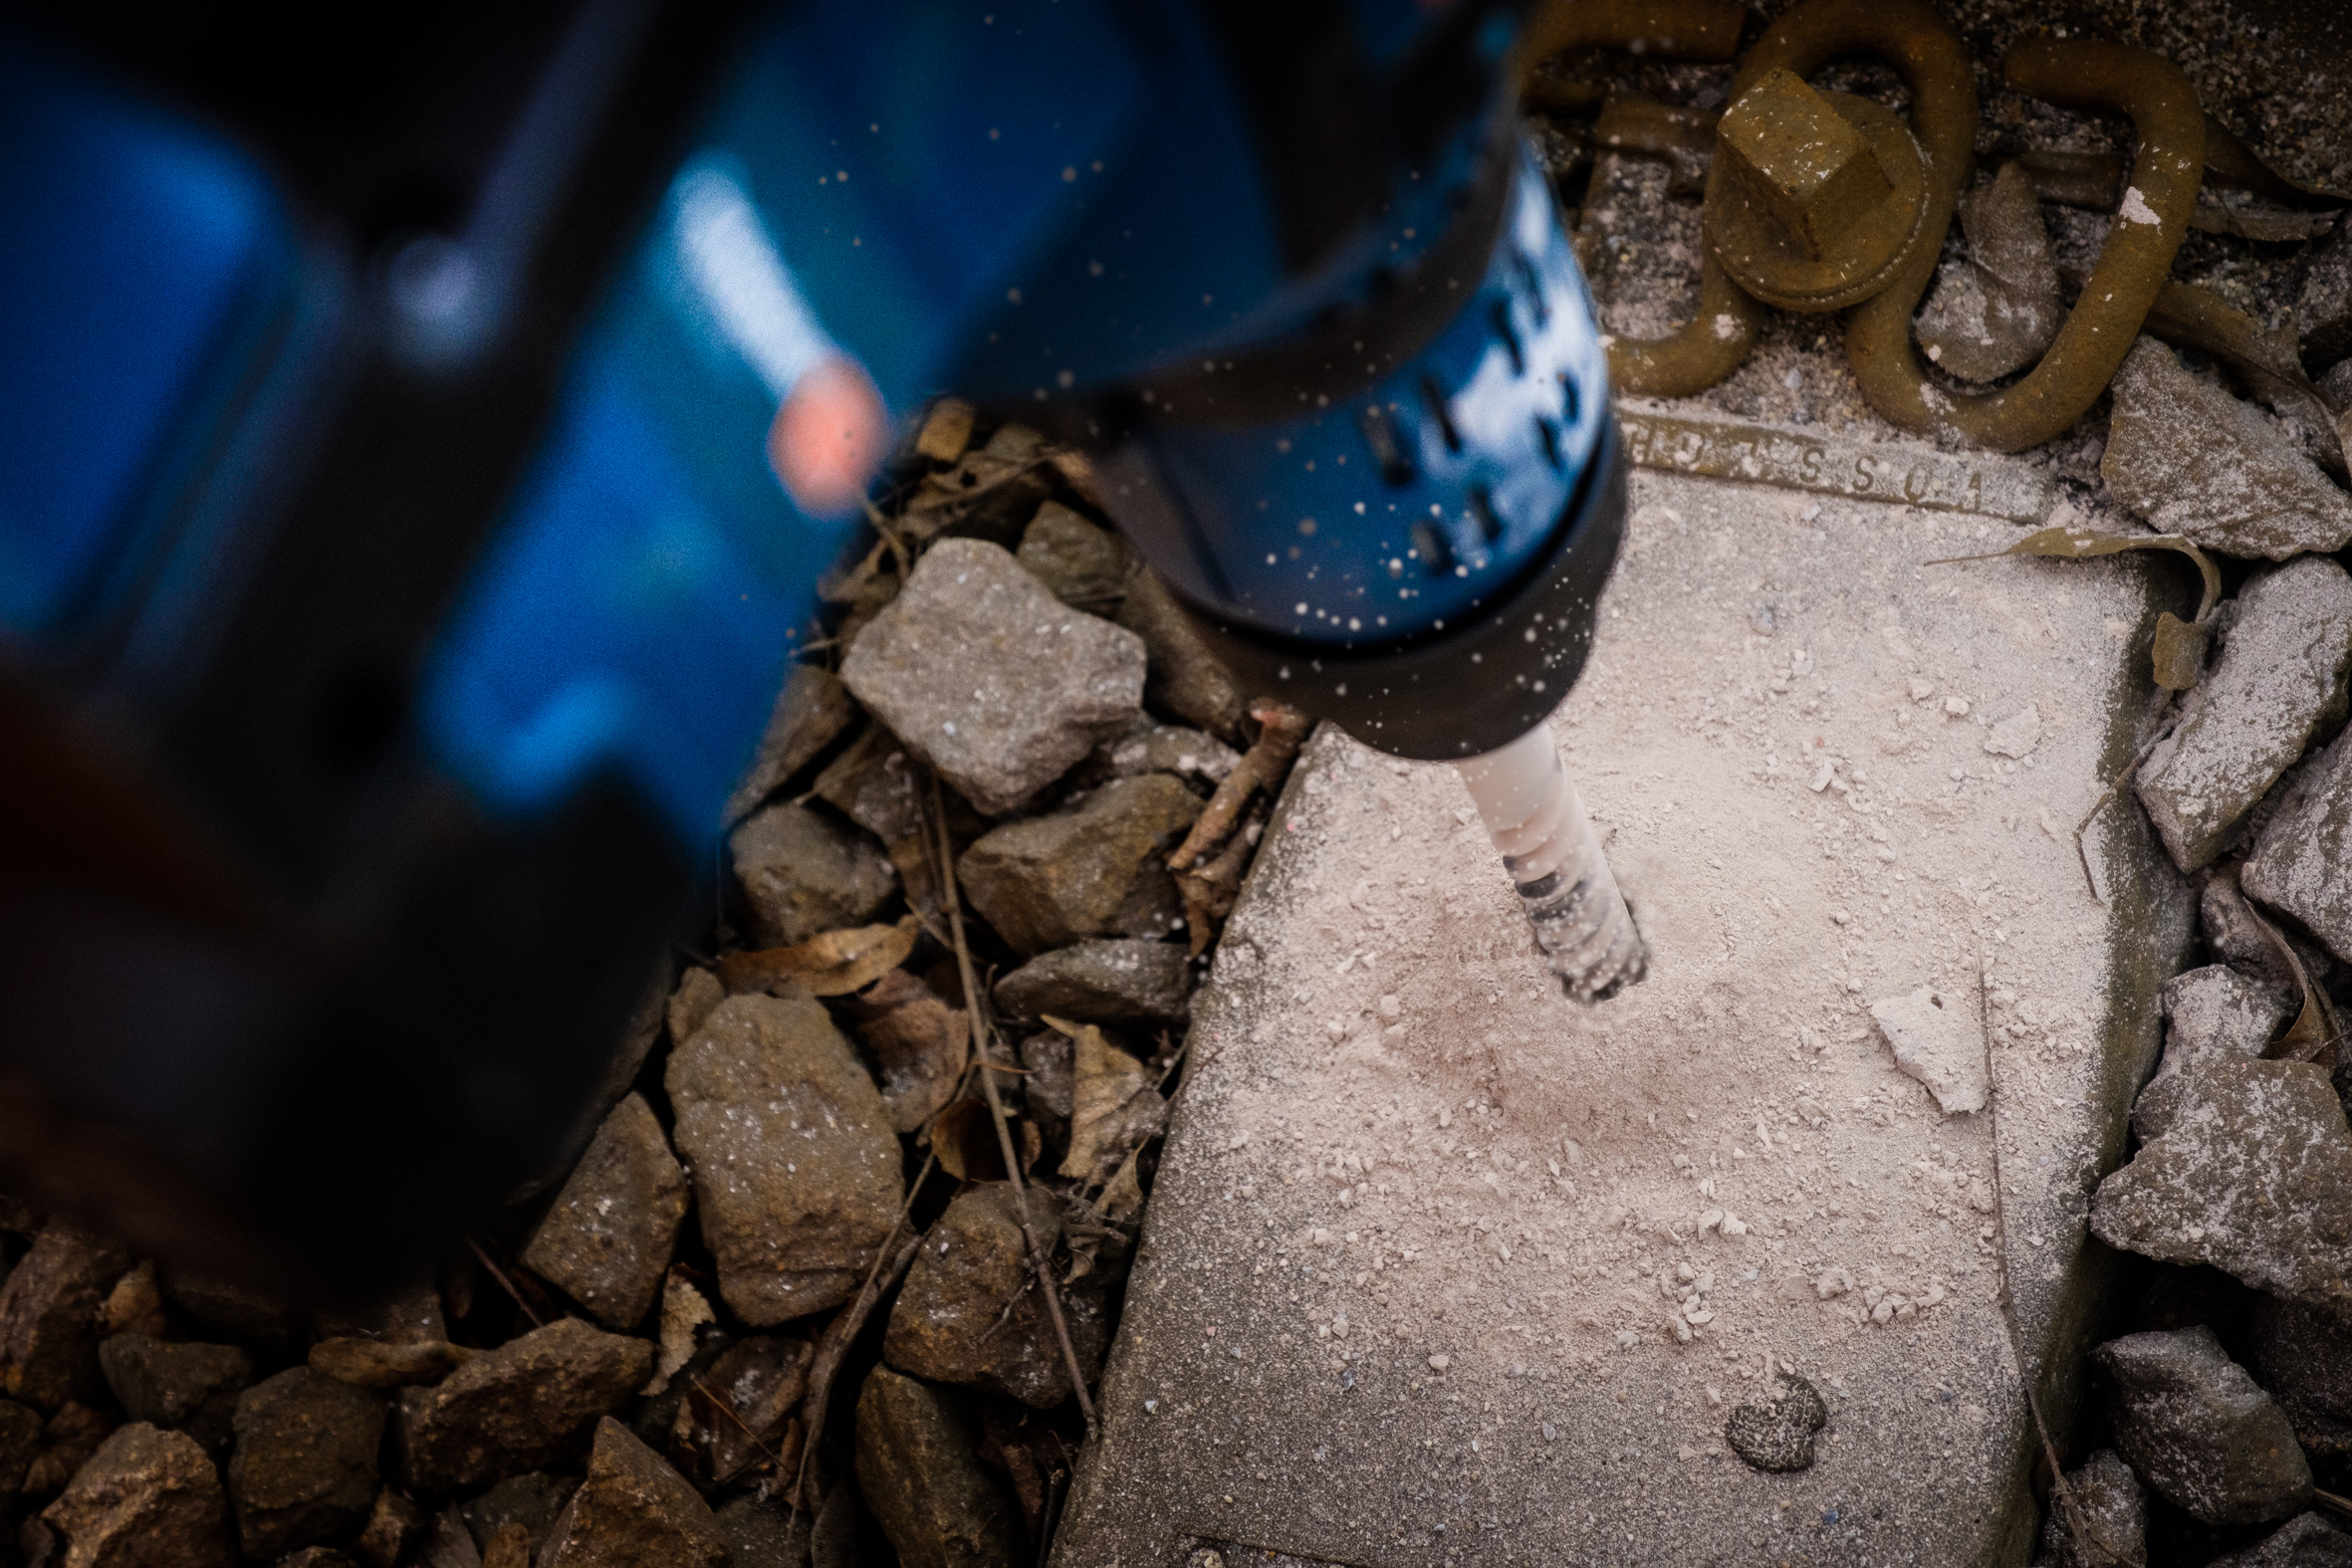 Achieving goals faster with reliable tools: Bosch SDS max-8X four-cutter hammer drill